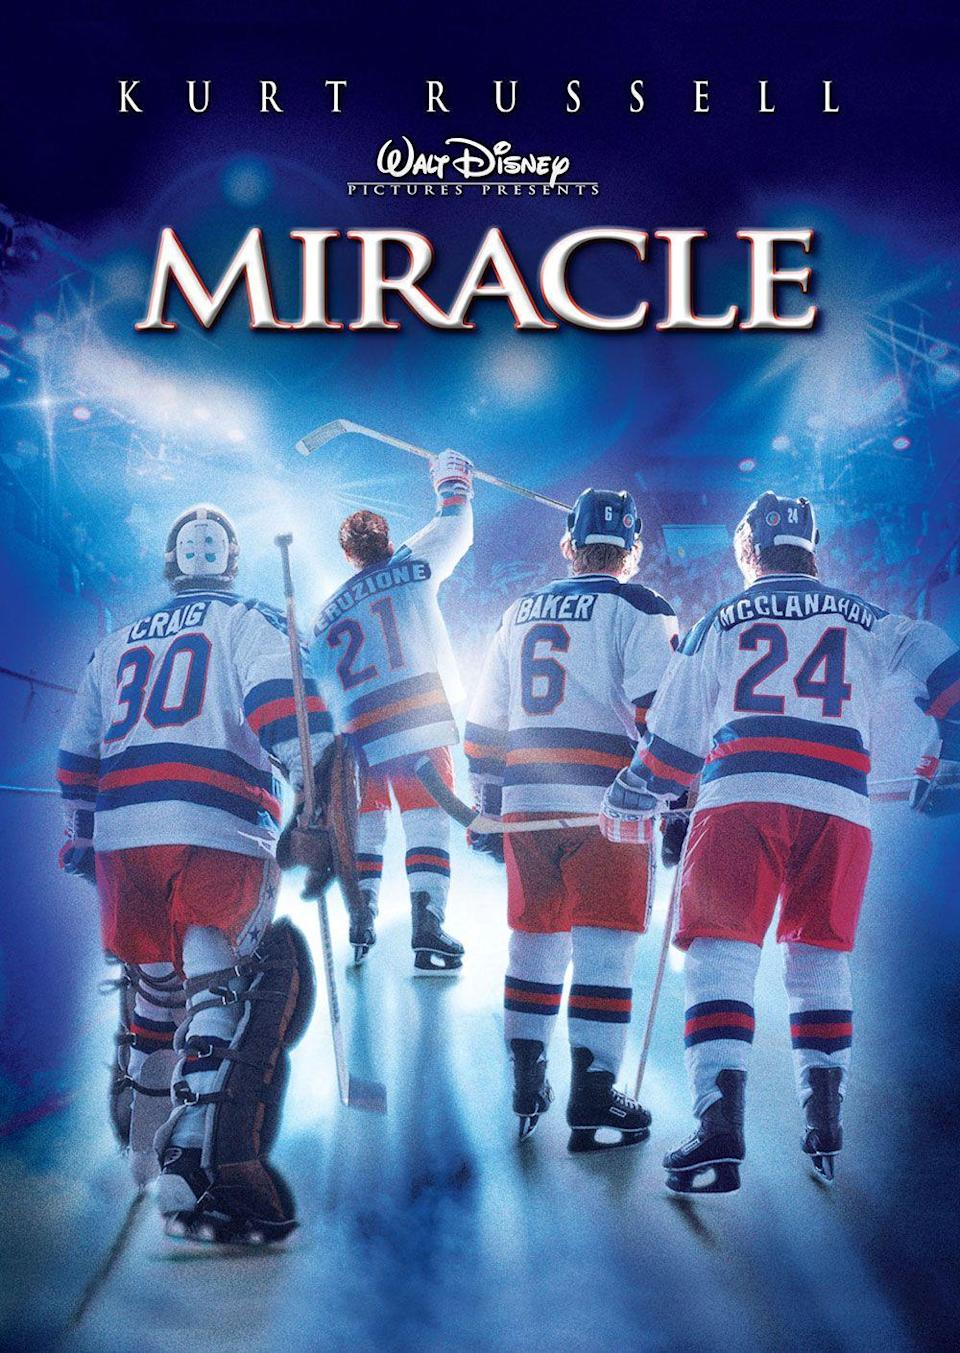 """<p>Everyone loves an inspirational sports movie, and this film is one of the best. <em>Miracle </em>is based on a true event from American history, in which a hockey coach brought together the 1980 US Olympic Team in hopes of being able to defeat the Soviets. <br><br><a class=""""link rapid-noclick-resp"""" href=""""https://www.amazon.com/Miracle-Kurt-Russell/dp/B003V5EDQ8/ref=sr_1_2?tag=syn-yahoo-20&ascsubtag=%5Bartid%7C10070.g.36156094%5Bsrc%7Cyahoo-us"""" rel=""""nofollow noopener"""" target=""""_blank"""" data-ylk=""""slk:STREAM NOW"""">STREAM NOW</a></p>"""